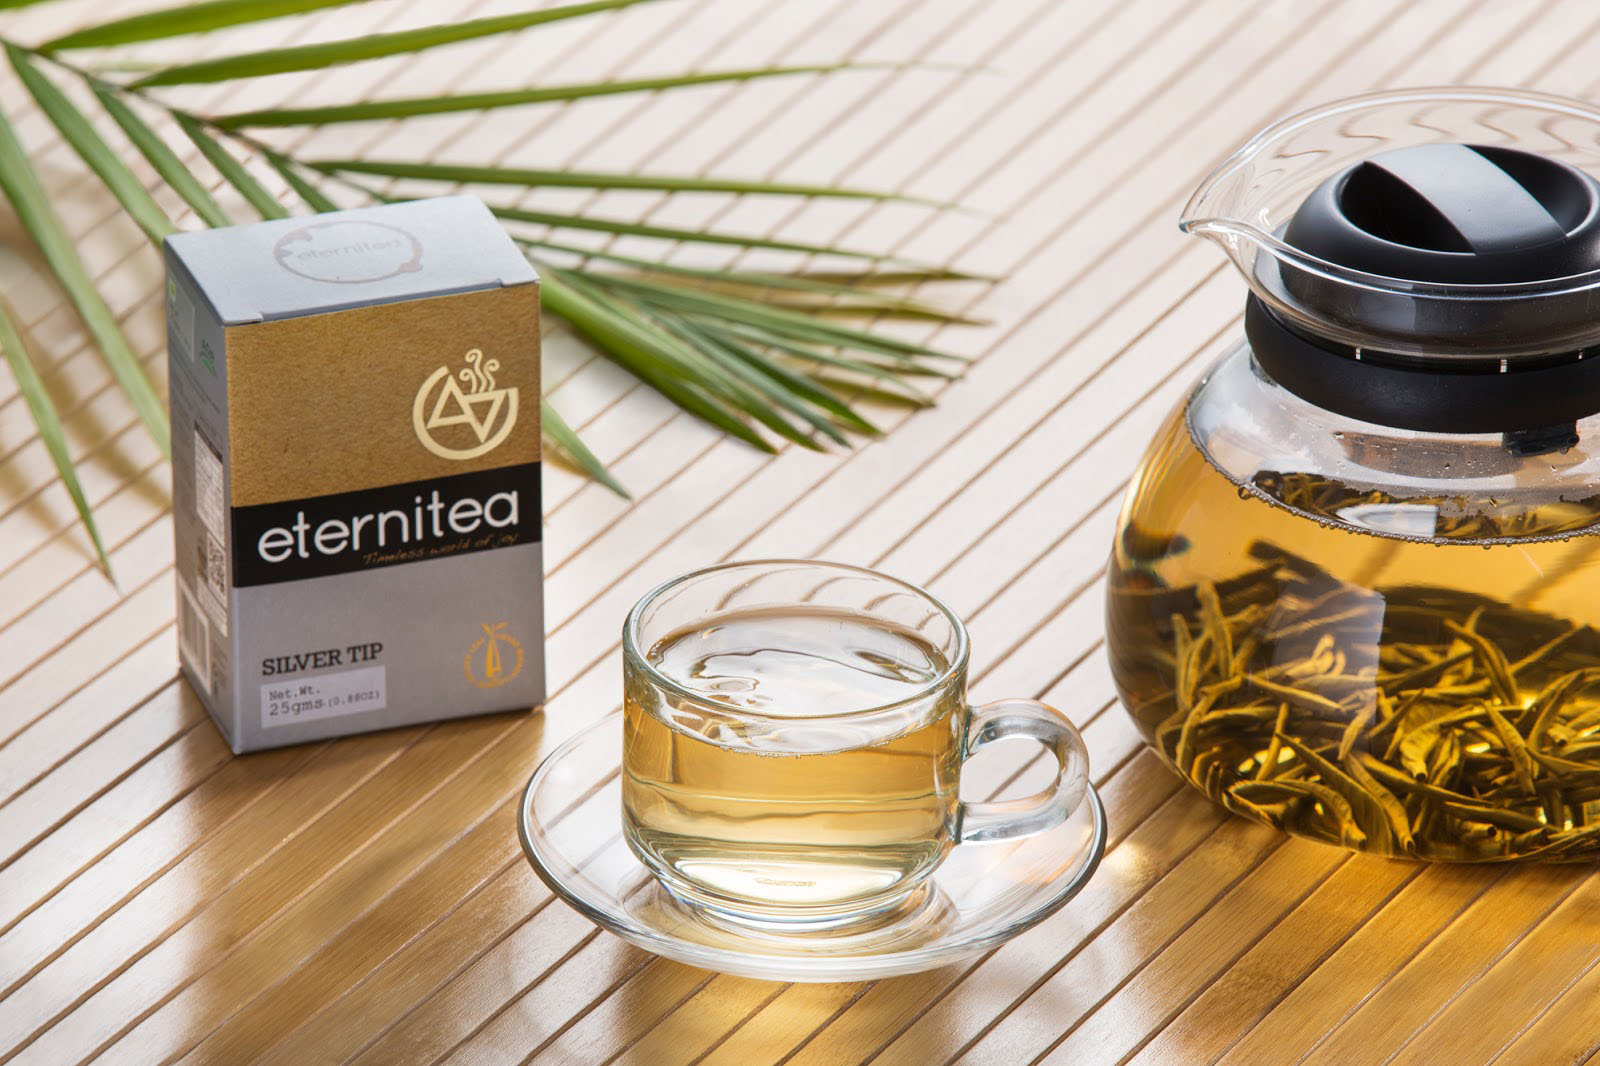 eternitea (2)